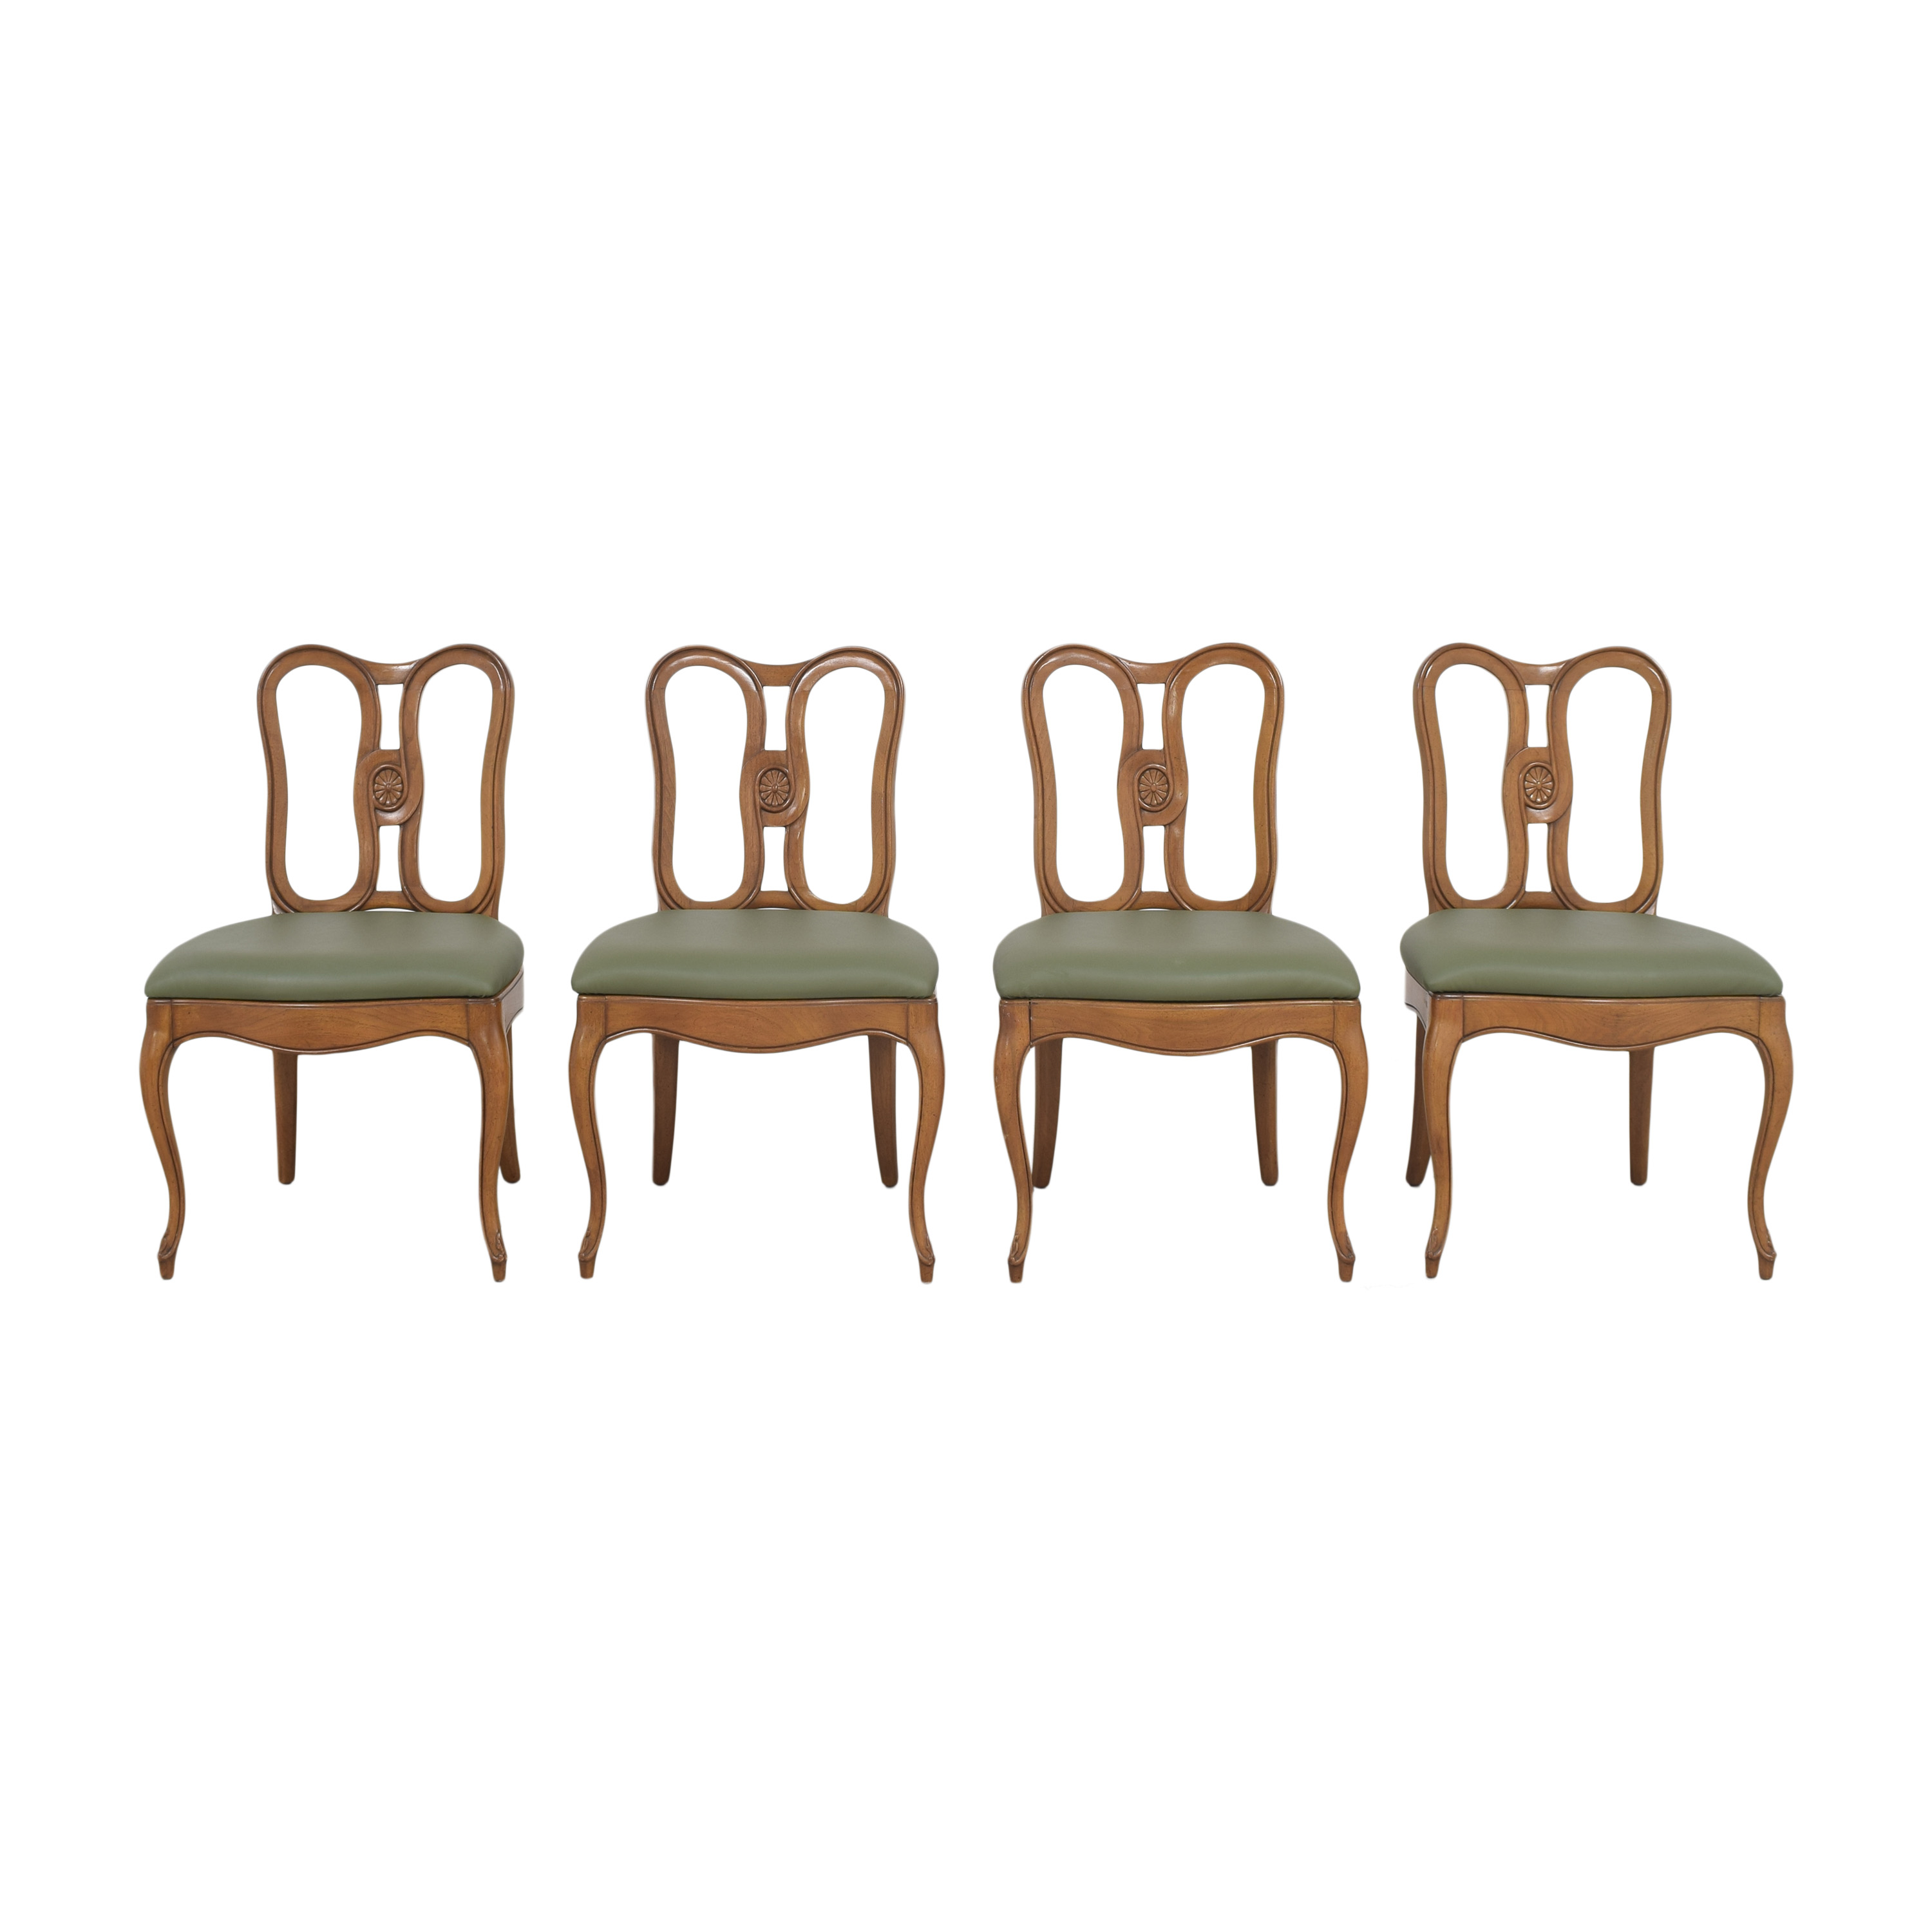 buy John Stuart Inc. John Stuart Inc. Dining Side Chairs online